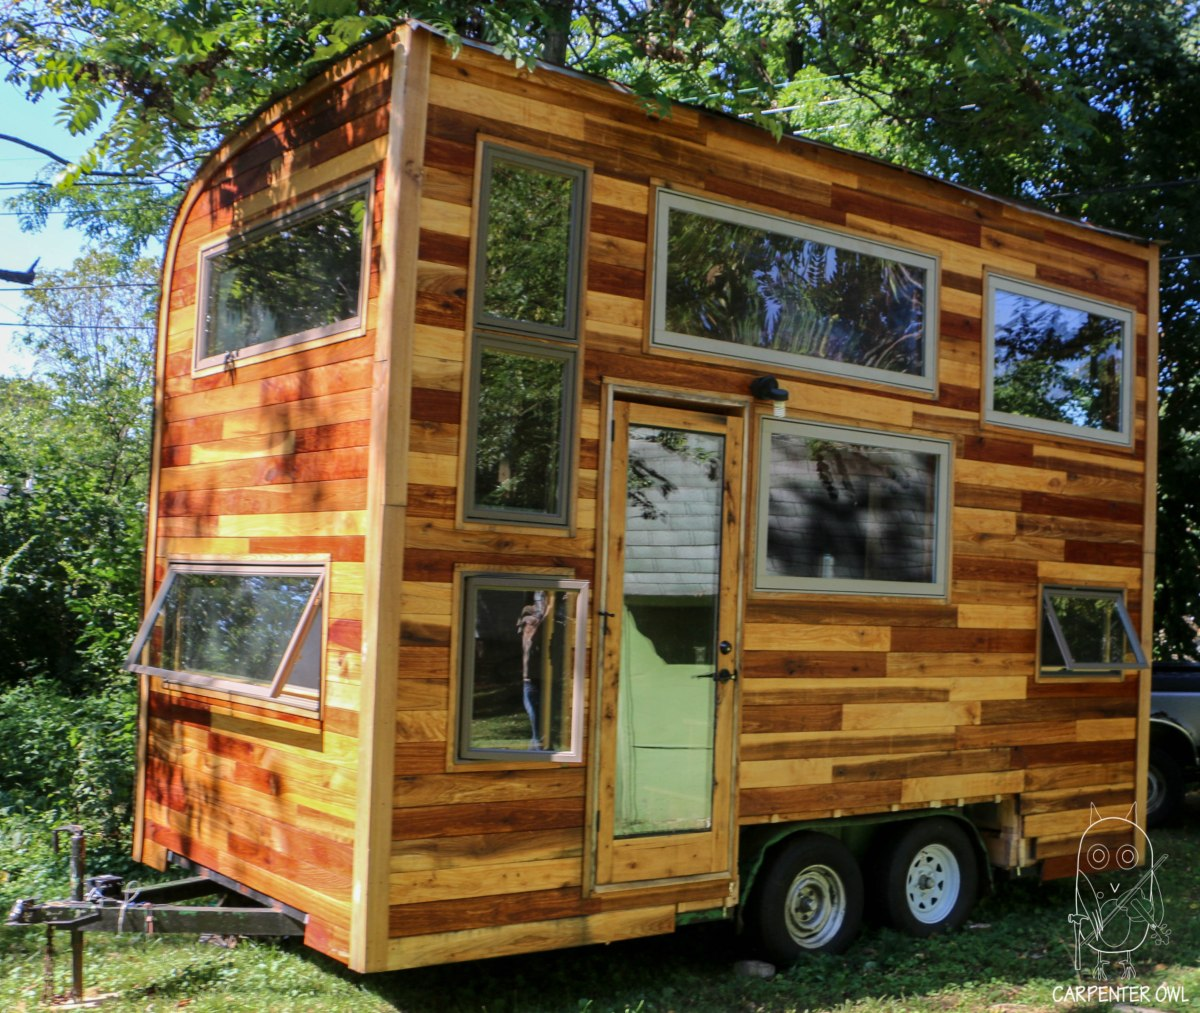 The Fiddlin Snail Tiny Home By Carpenter Owl